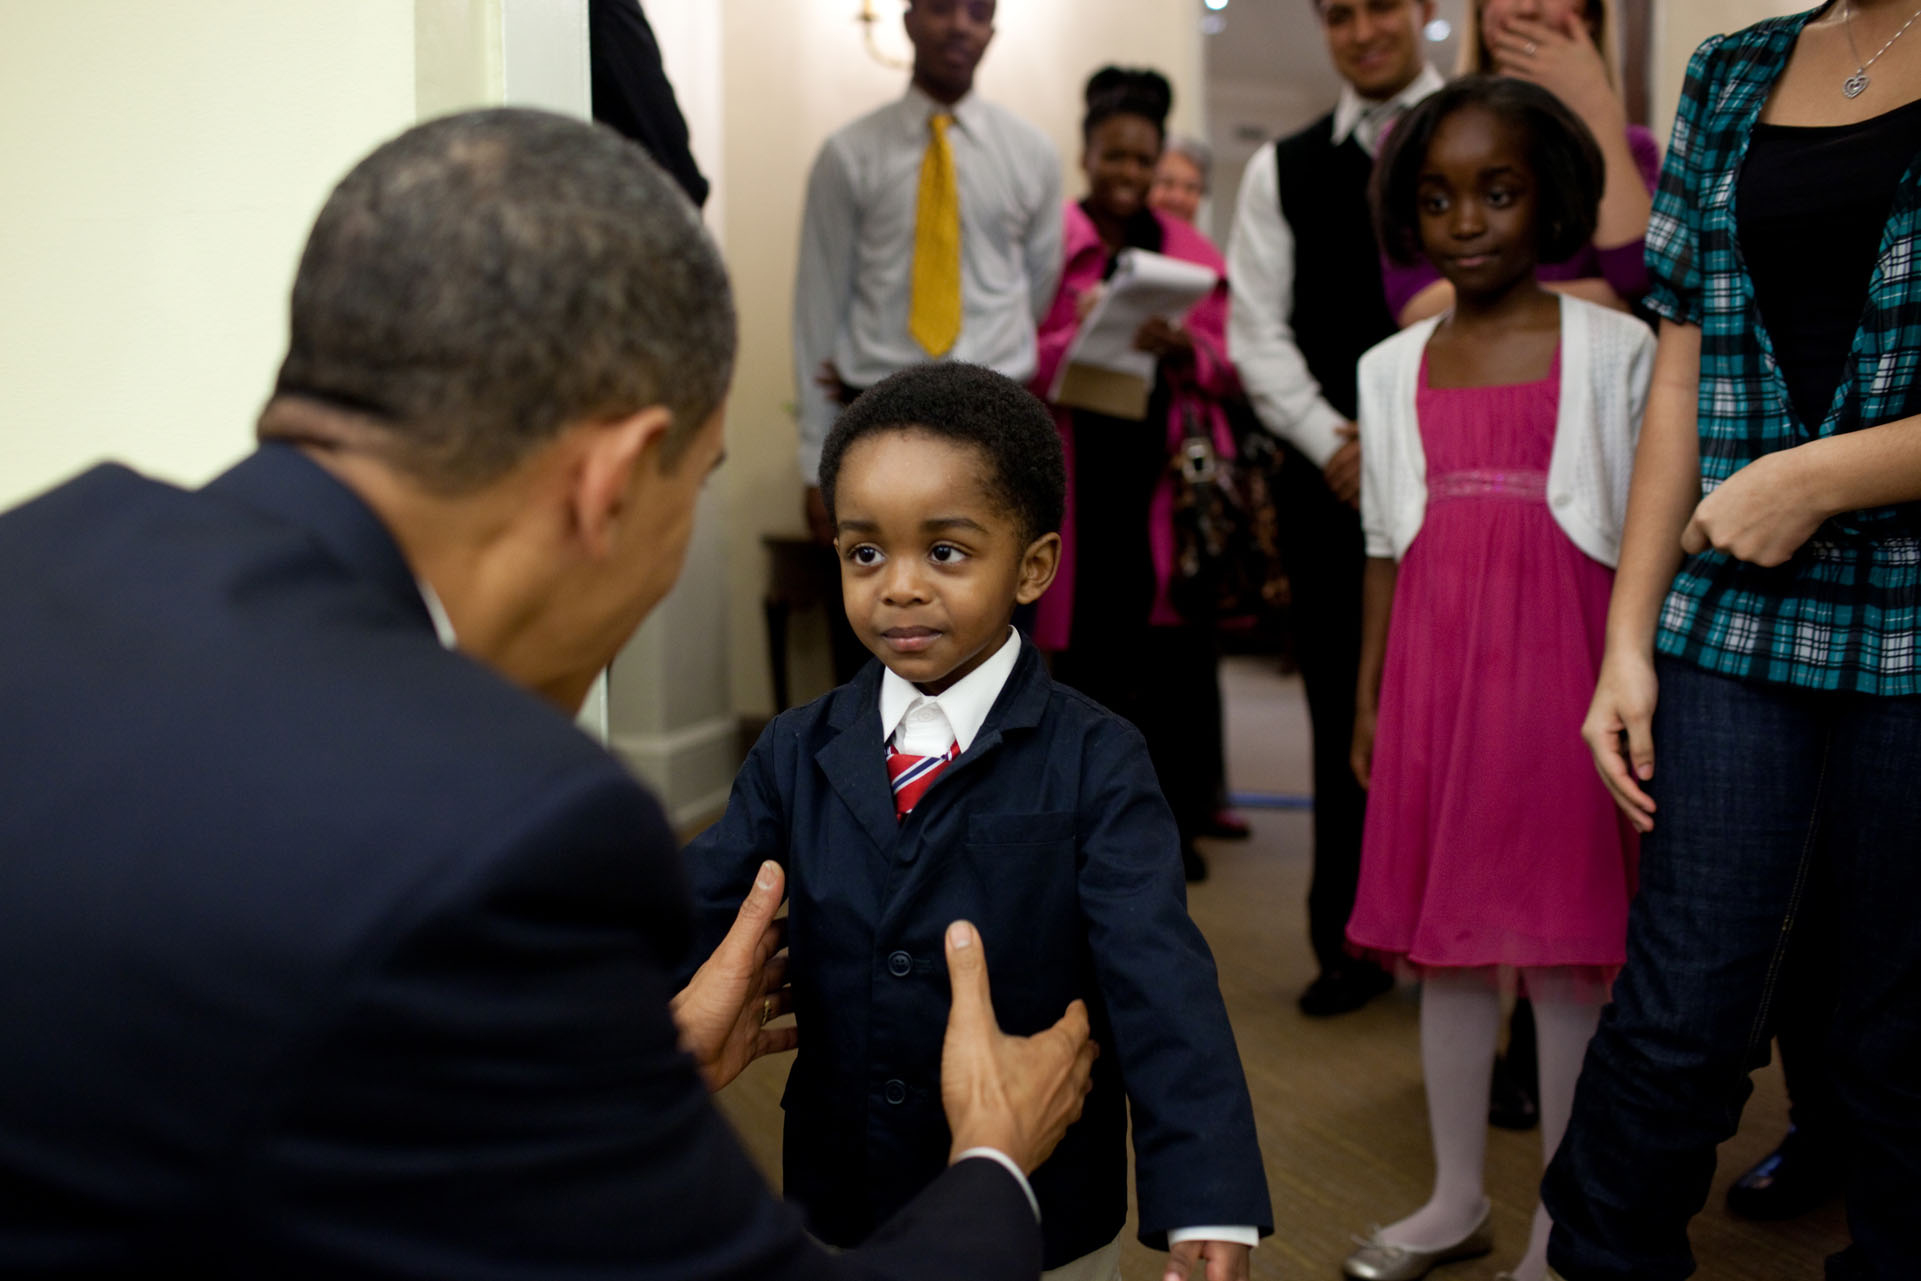 The President Greets a Young Visitor